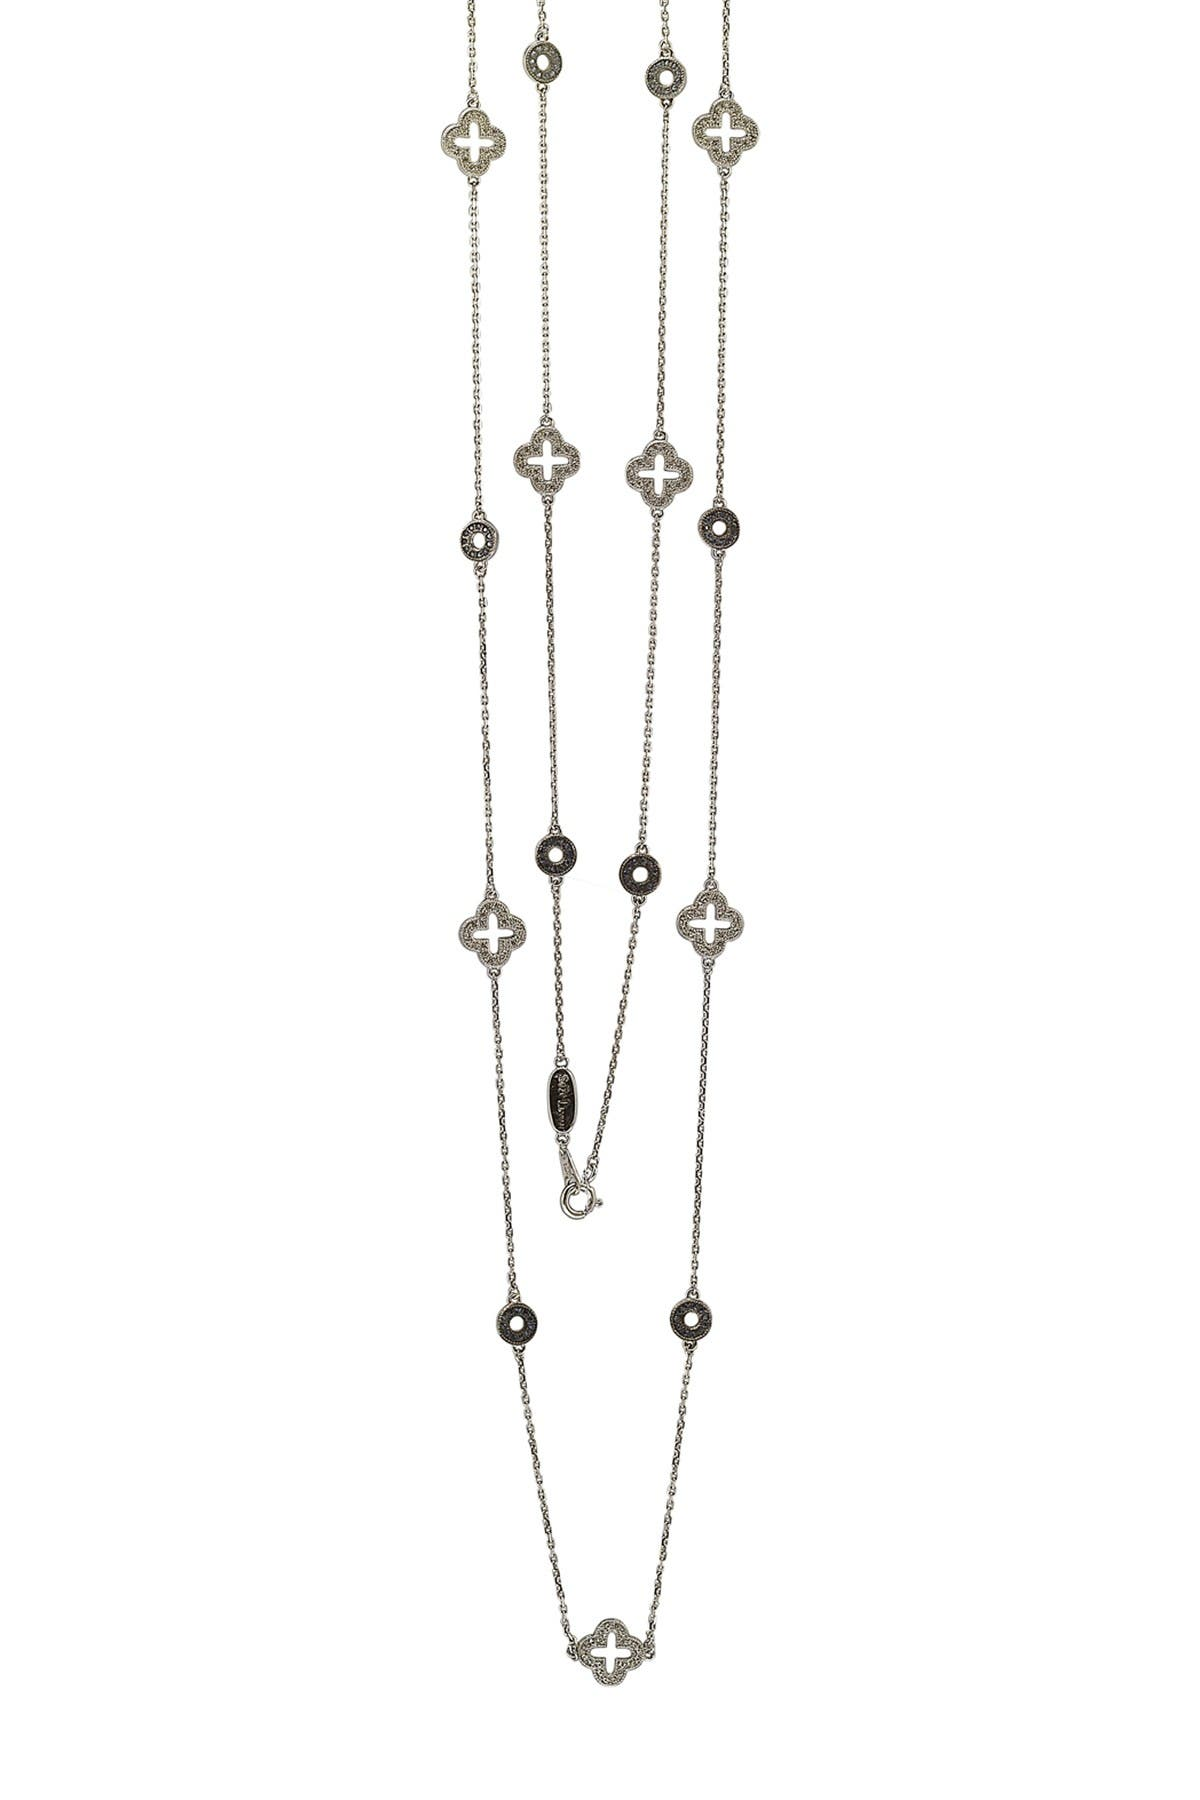 Image of Suzy Levian Sterling Silver Sapphire & Diamond Accent Station Necklace - 0.02 ctw